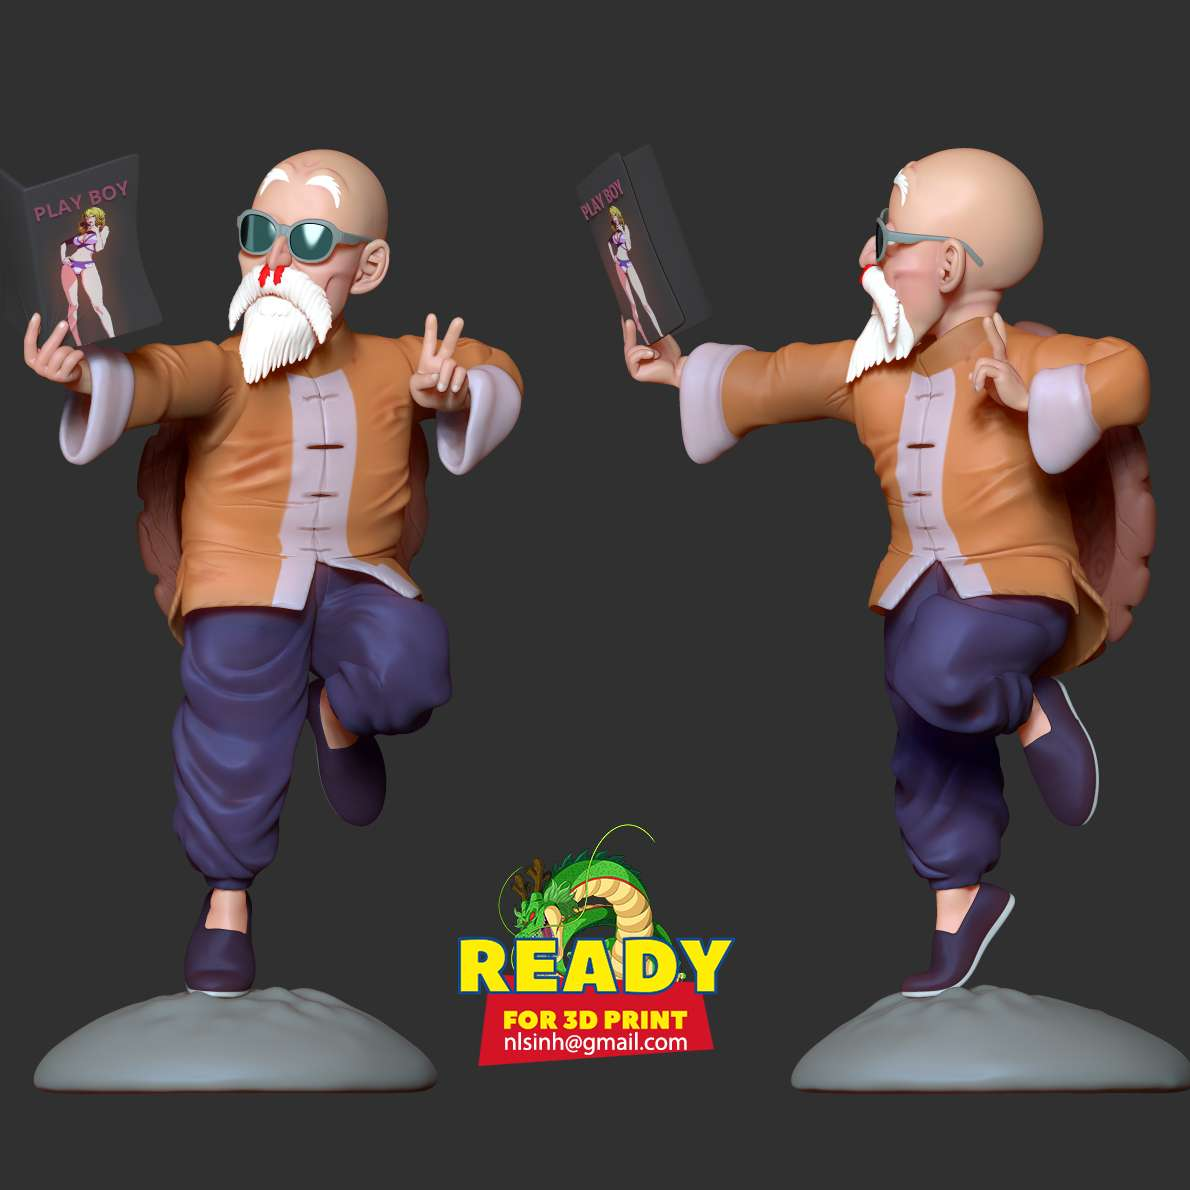 """Master Roshi - Dragon Ball Fan art - > Master Roshi, commonly referred to in the original Japanese as Kame Sennin (亀仙人, lit. """"Turtle Hermit"""") and also known as Muten Rōshi (武天老師, lit. """"Elder God of Martial Arts""""), is a fictional character from the Dragon Ball series created by Akira Toriyama. He is an ancient and wise martial arts master, as well as the creator of the Kamehameha (かめはめ波) technique. His students include Grandpa Gohan, The Ox-King, Son Goku, Krillin and Yamcha.  Thanks to Papy 3D for printing this model (https://www.facebook.com/3Dpapy/photos/a.119366829870643/145341983939794/).  I have divided the individual parts to make it easy for 3D printing:  **- OBJ, STL files are ready for 3D printing.**  **- Zbrush original files for you to customize as you like.**  _1st February, 2020] This is version 1.0 of this model. _  _[19th May, 2020] v1.3: Fixed the head to print without error. Thank https://www.cgtrader.com/bik-airsoft for his feedback._  Hope you get a good print from this model. Thanks so much! - Os melhores arquivos para impressão 3D do mundo. Modelos stl divididos em partes para facilitar a impressão 3D. Todos os tipos de personagens, decoração, cosplay, próteses, peças. Qualidade na impressão 3D. Modelos 3D com preço acessível. Baixo custo. Compras coletivas de arquivos 3D."""